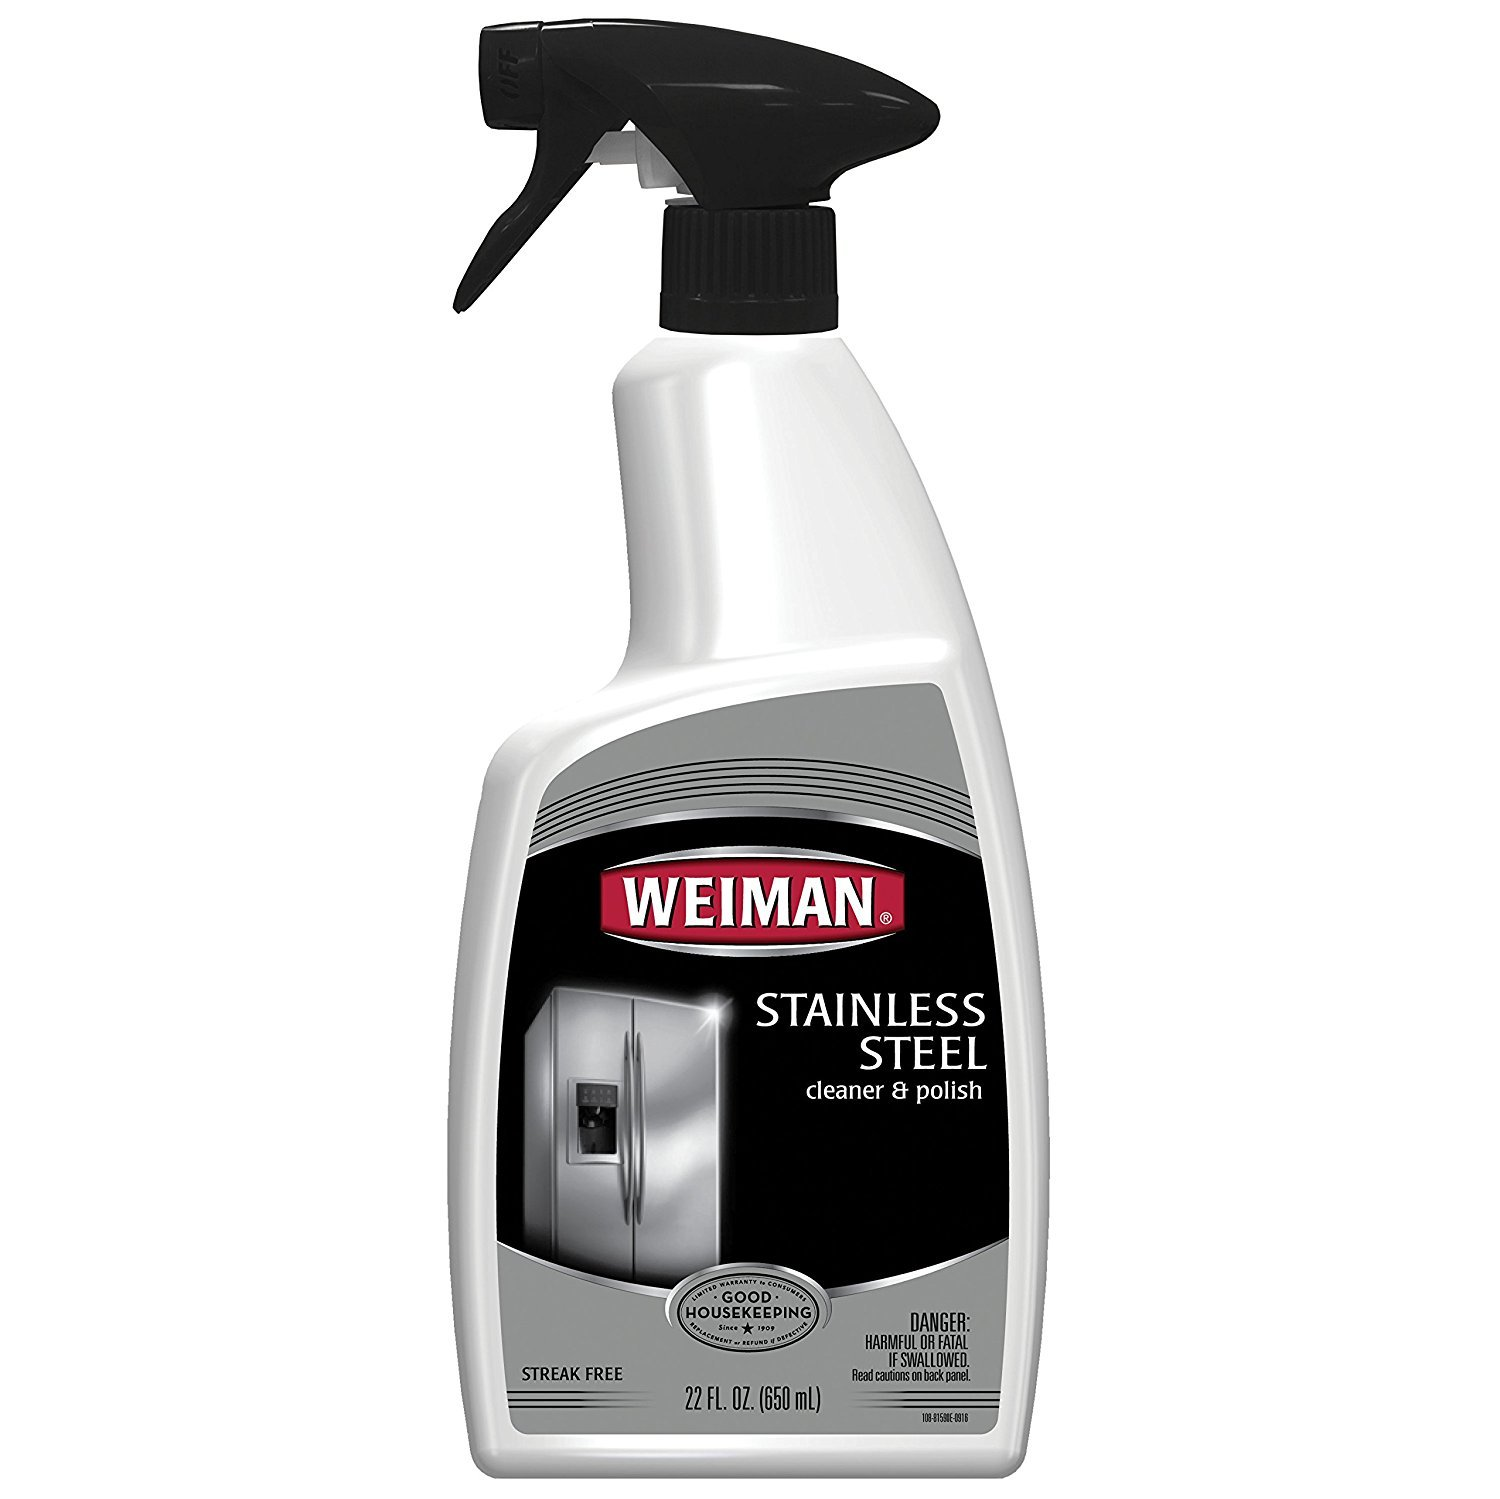 Weiman Stainless Steel Cleaner & Polish Trigger Spray, 4PACK (88 oz toal)